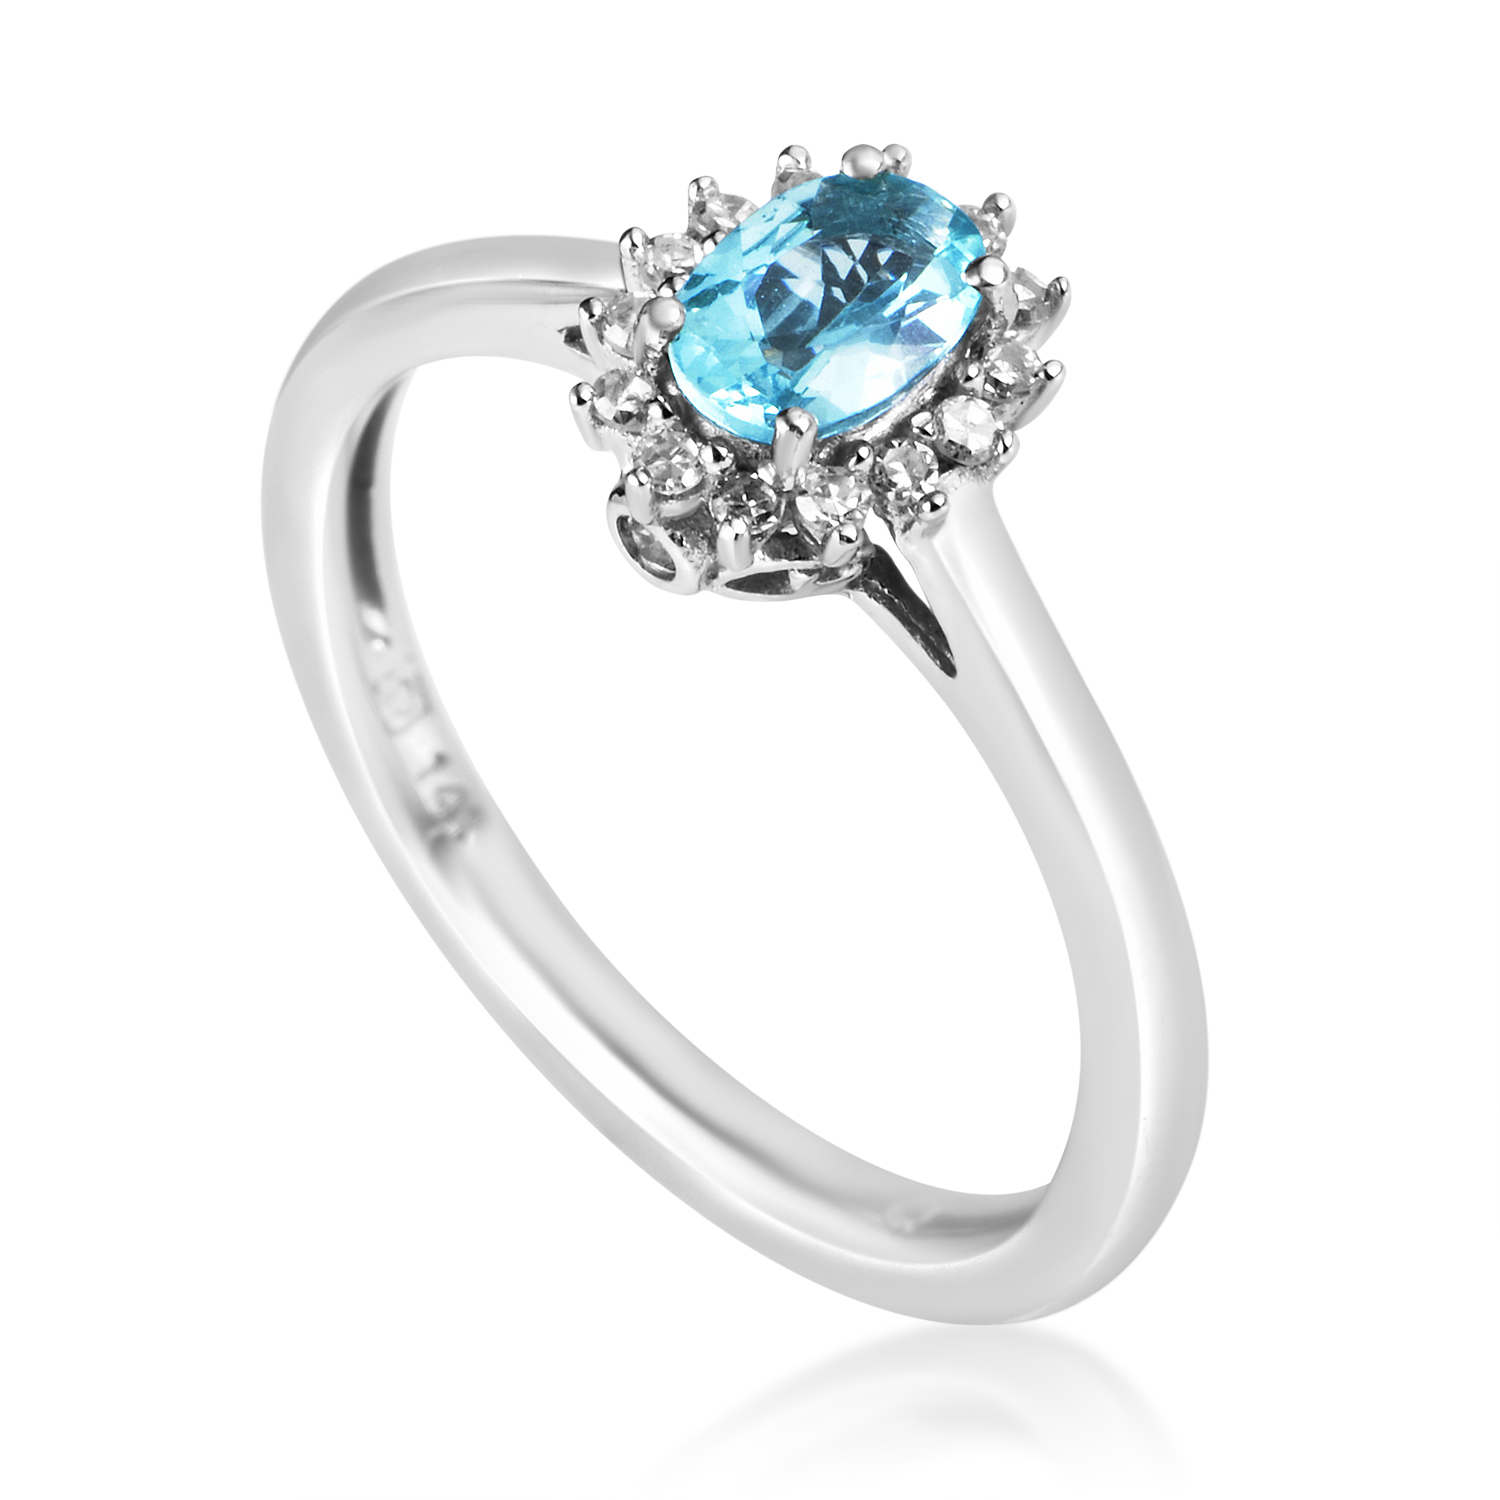 14K White Gold Diamond & Apatite Ring RC4-10517WAPB